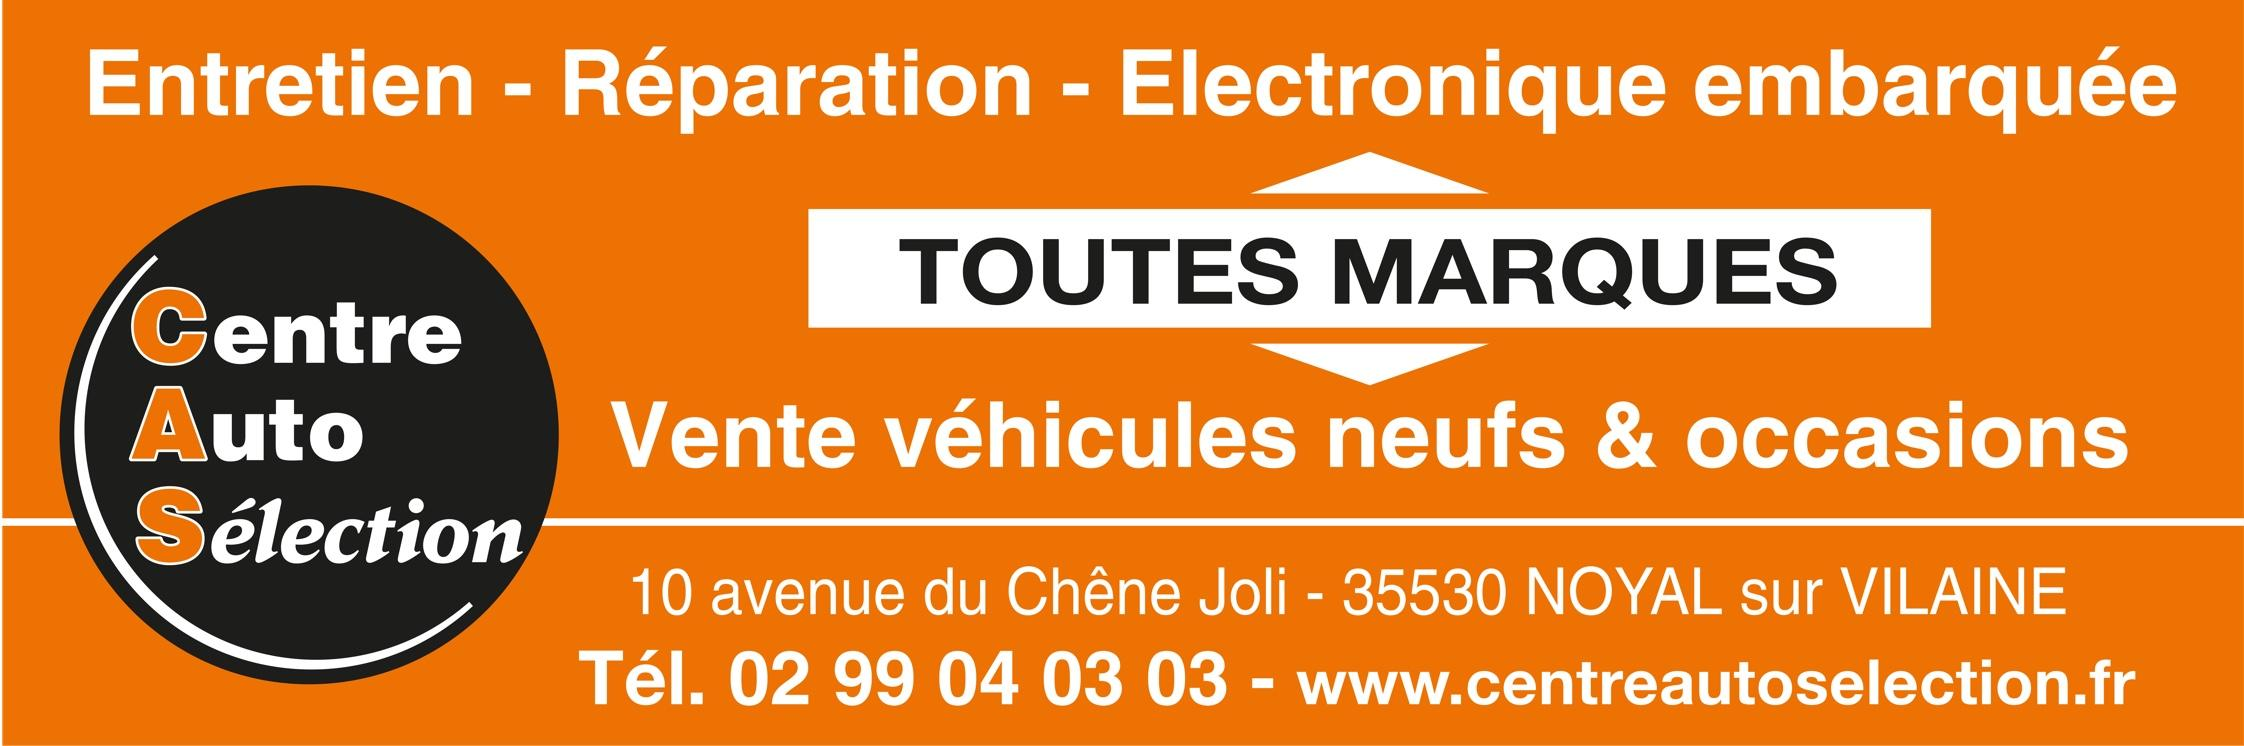 Centre Auto Selection